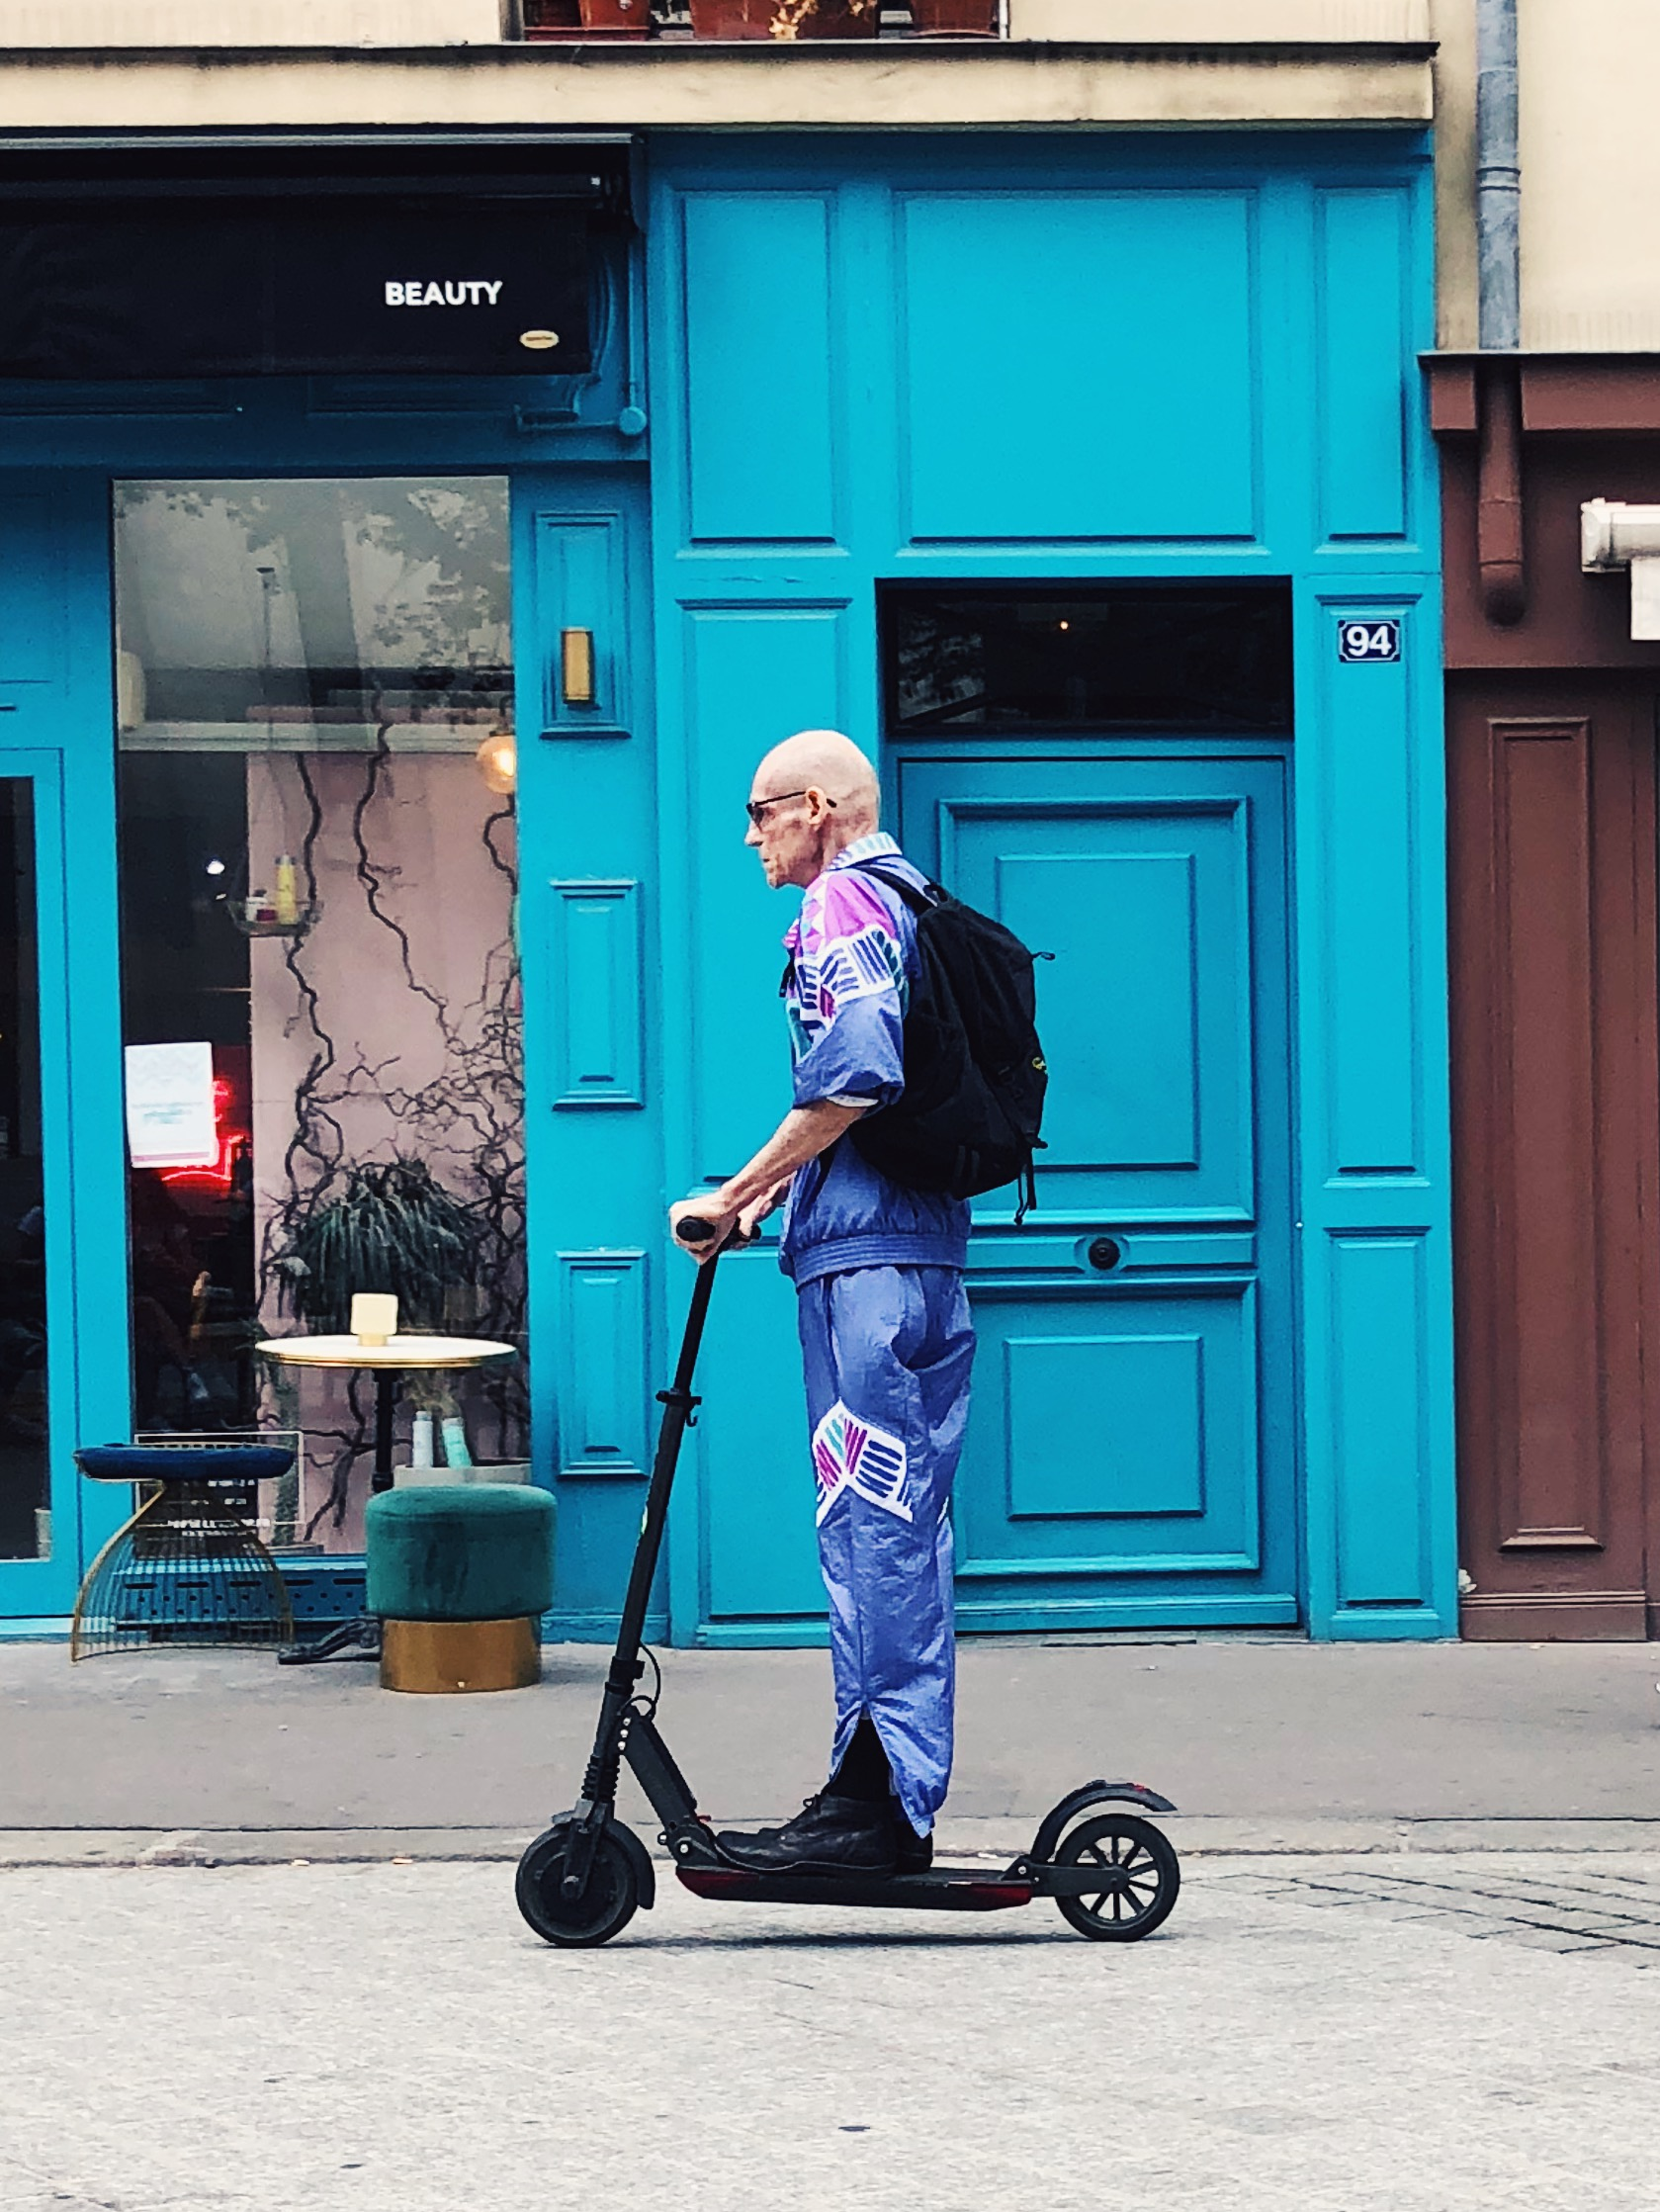 Old-man-riding-scooter.JPG